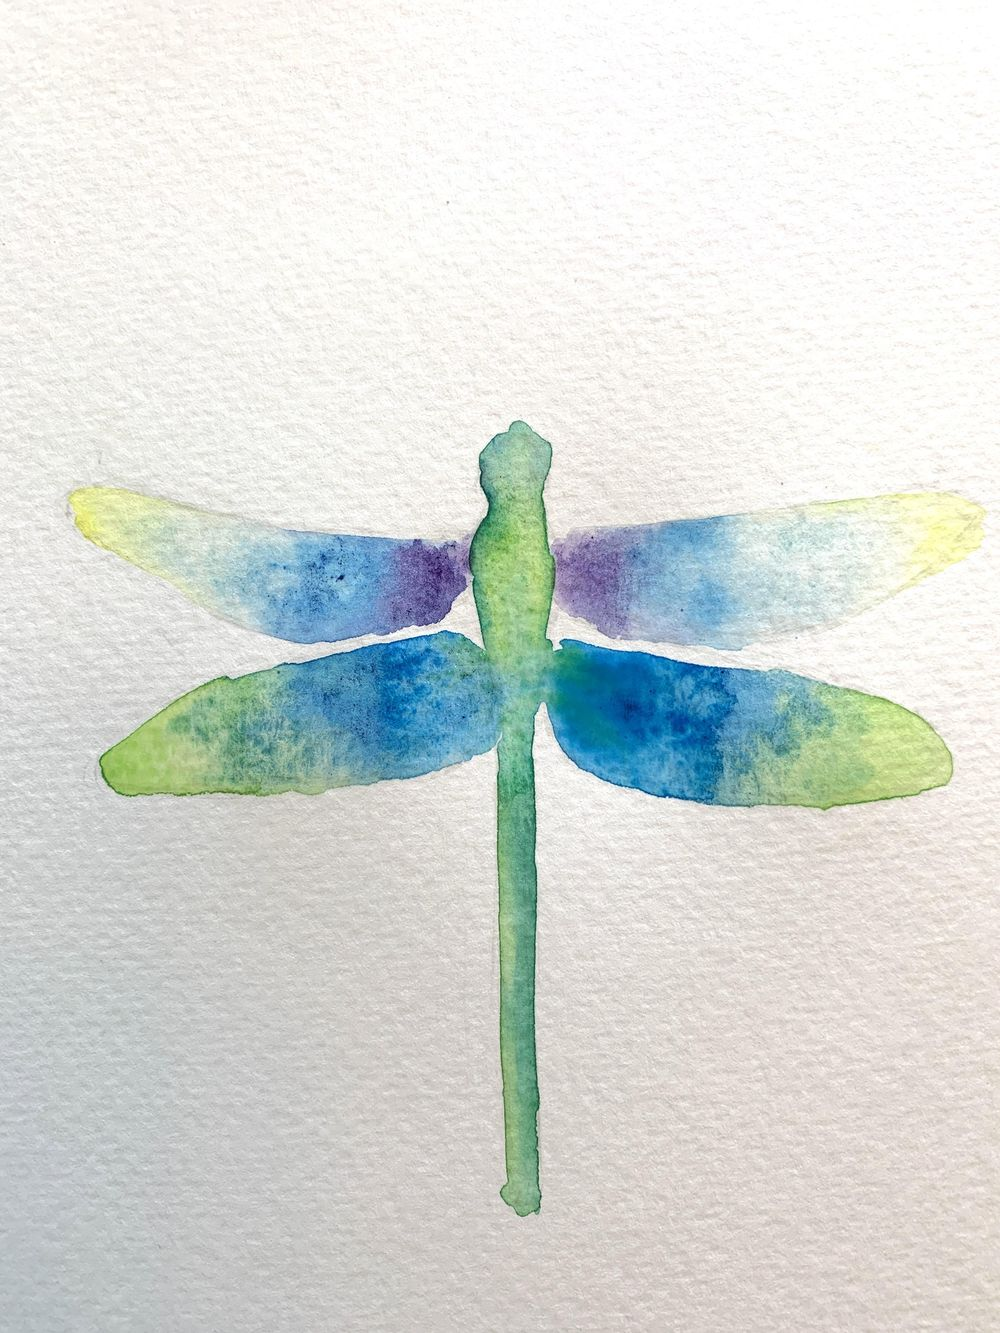 Dragonfly Process - image 2 - student project